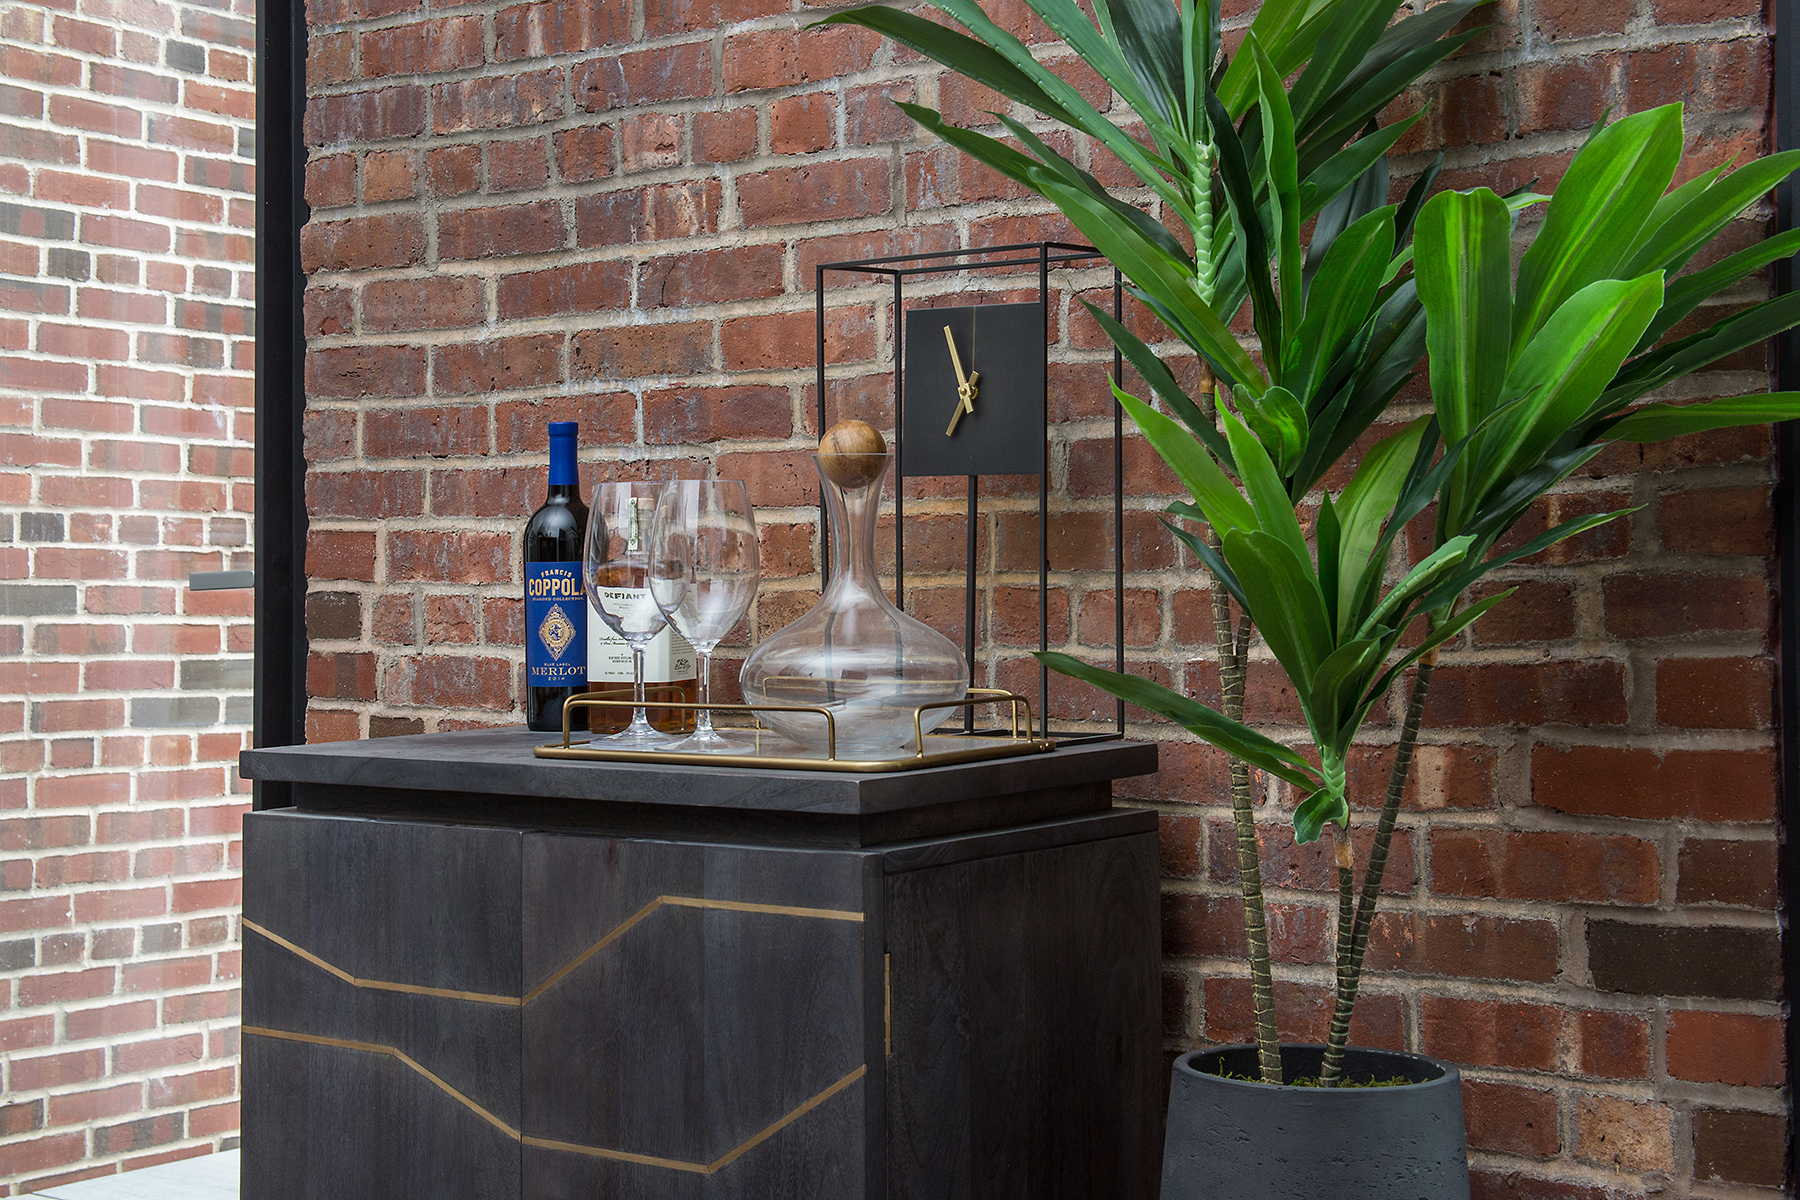 Geometric mini bar with wine, whiskey, glasses, and a minimalistic clock beside a plant against a brick wall. MEP designed by 2L Engineering.